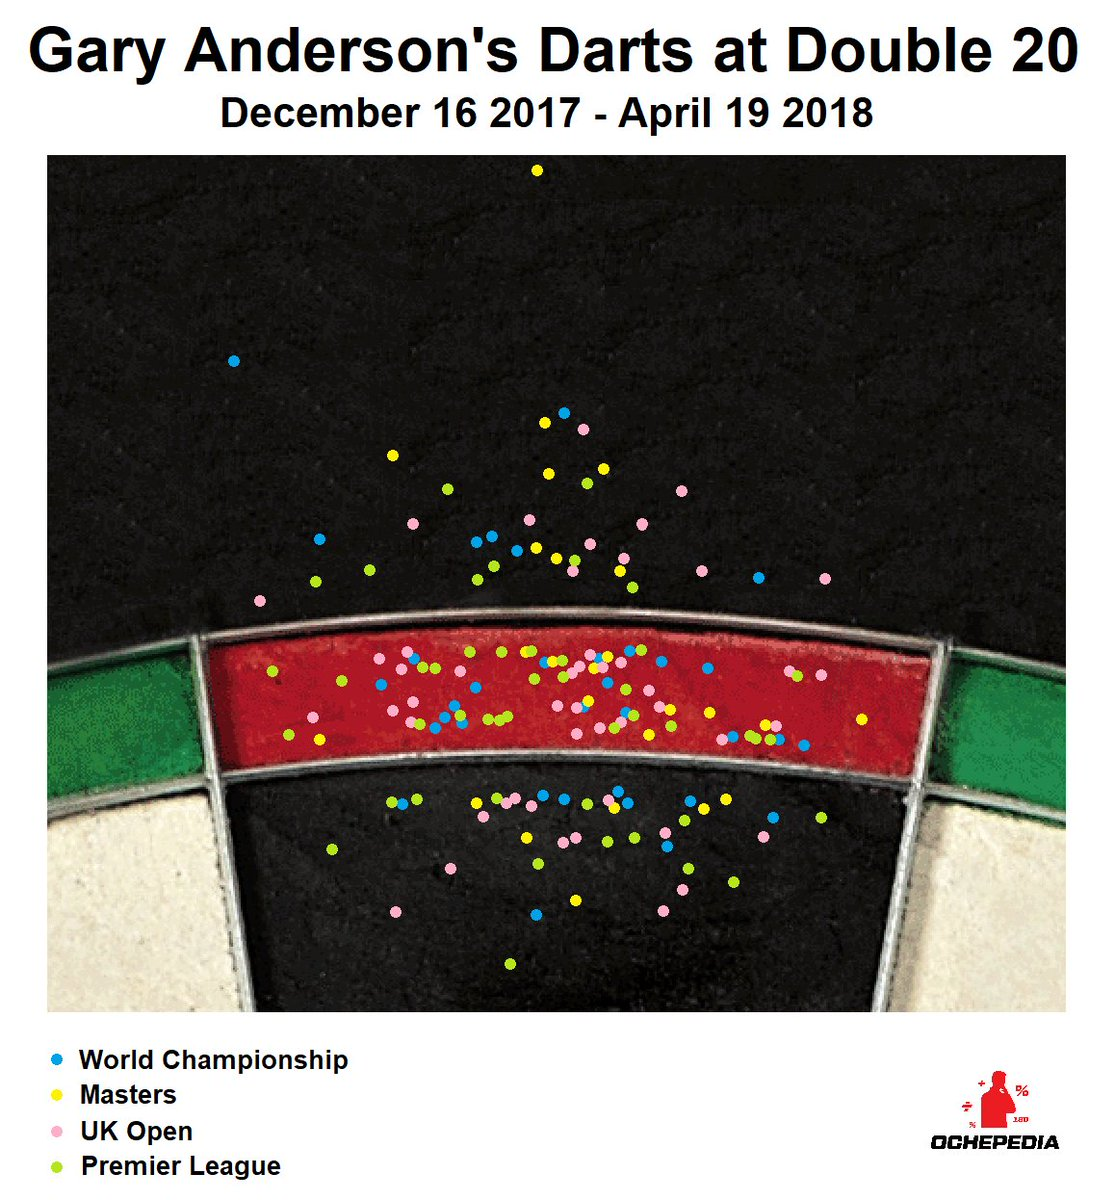 Gary Anderson is the leading tops hitter since December 16 2017, landing 50.3% of his 165 attempts in TV tournaments so far.  @ochepedia has mapped his consistency on D20.